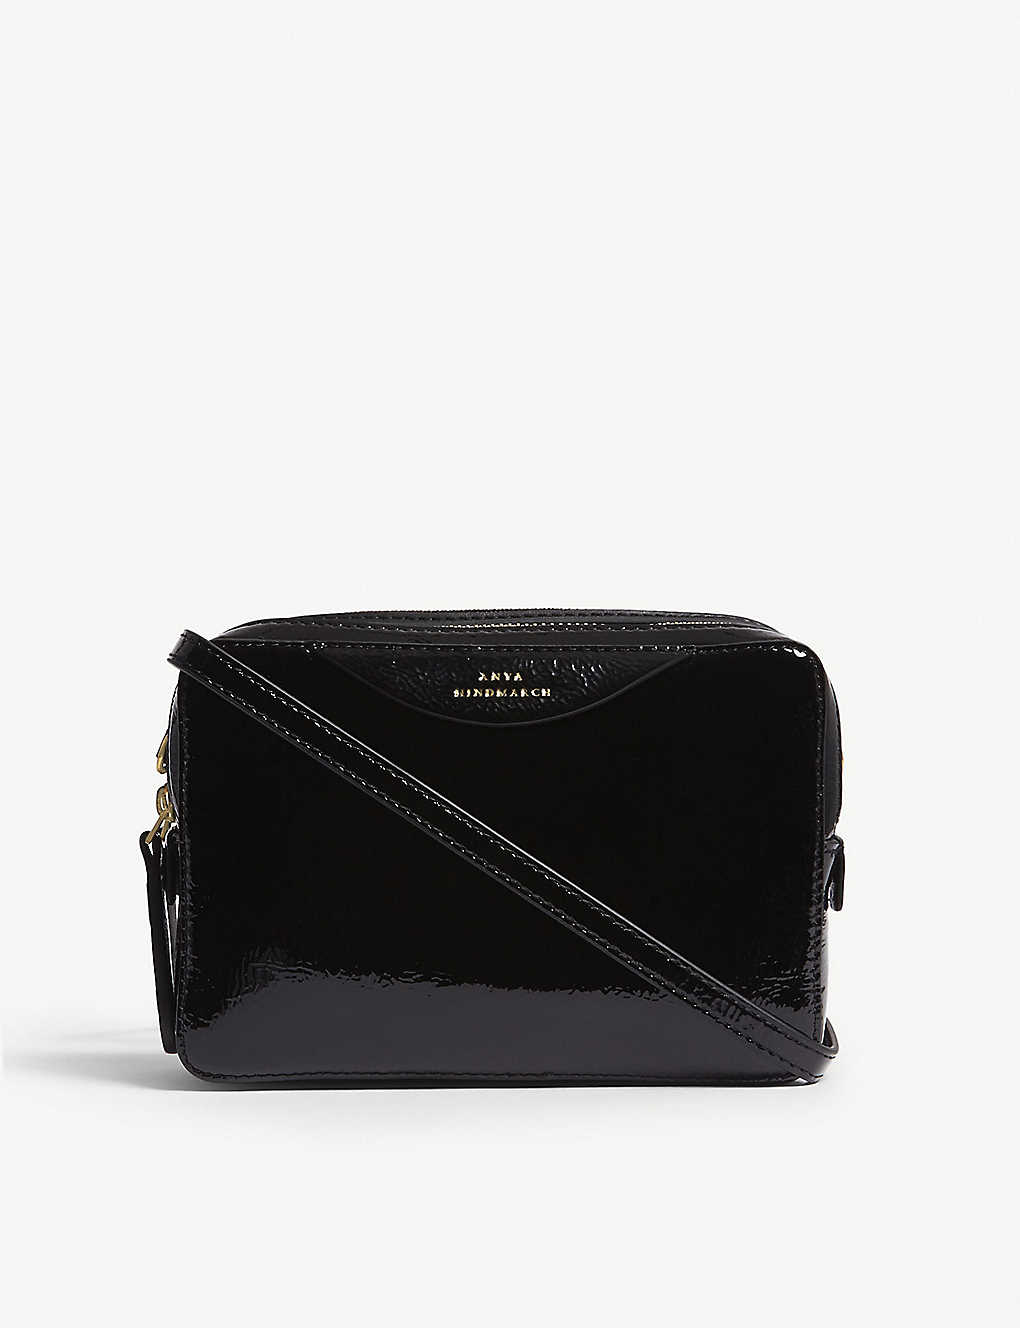 c4e525cca8 ANYA HINDMARCH - The Stack leather double wallet-on-chain ...